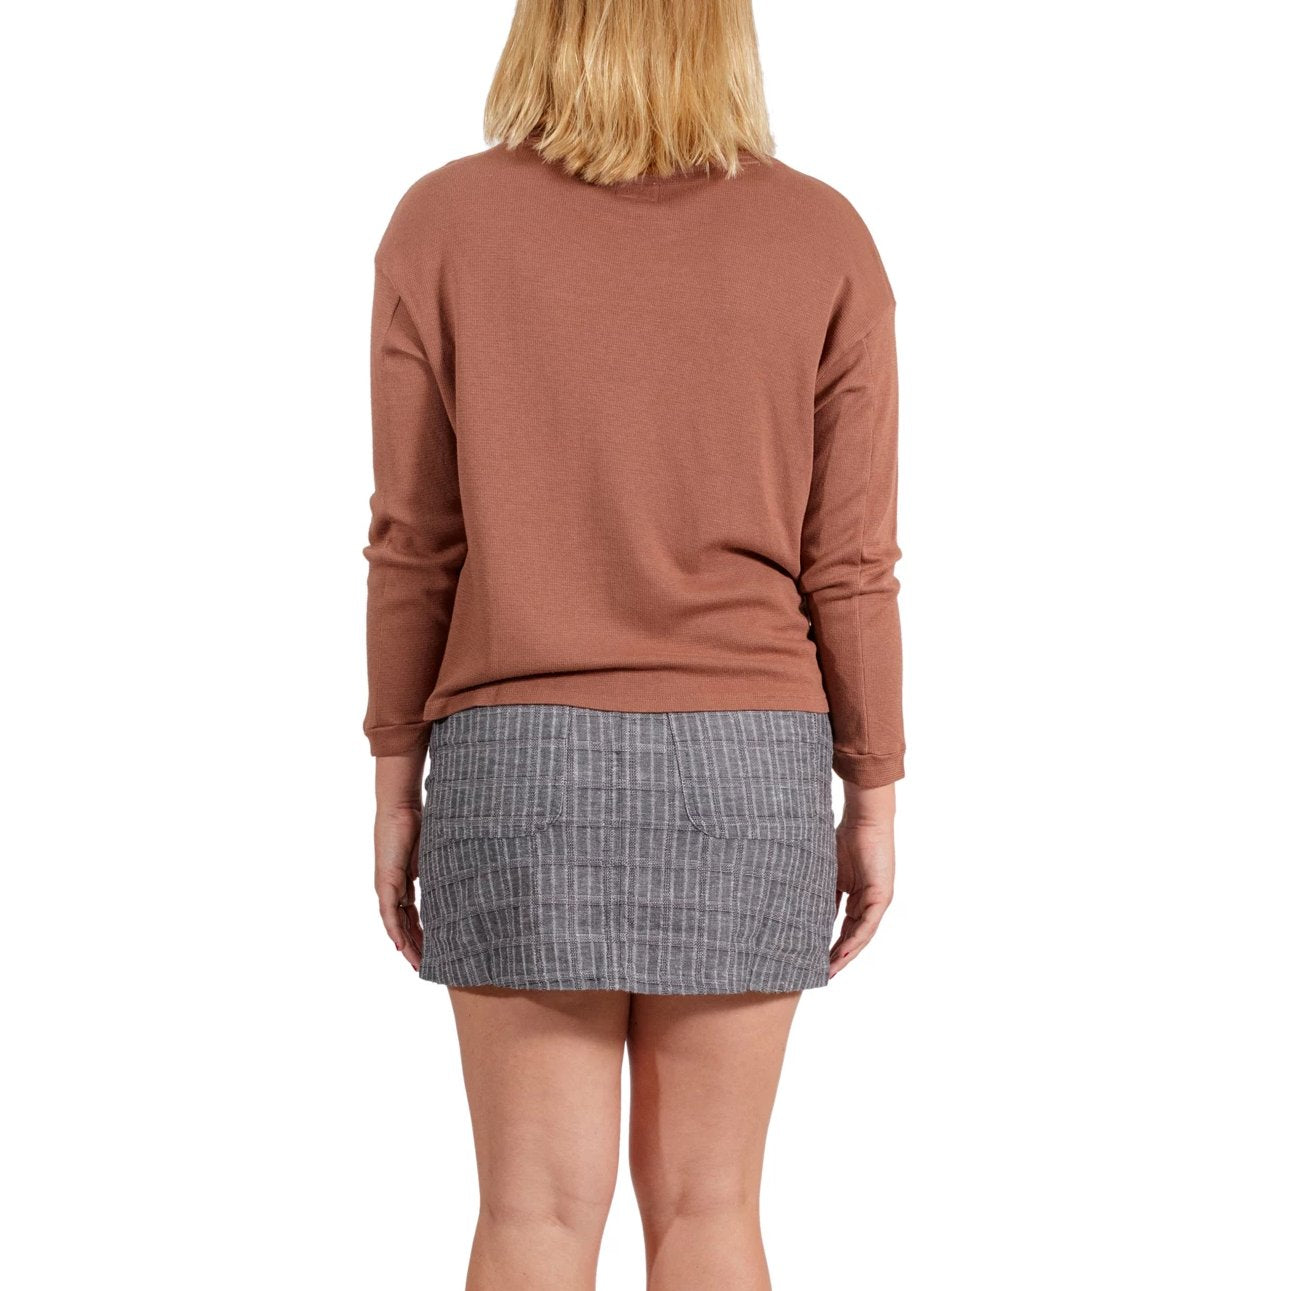 RVCA Lowry Knit Thermal Top - Nutmeg